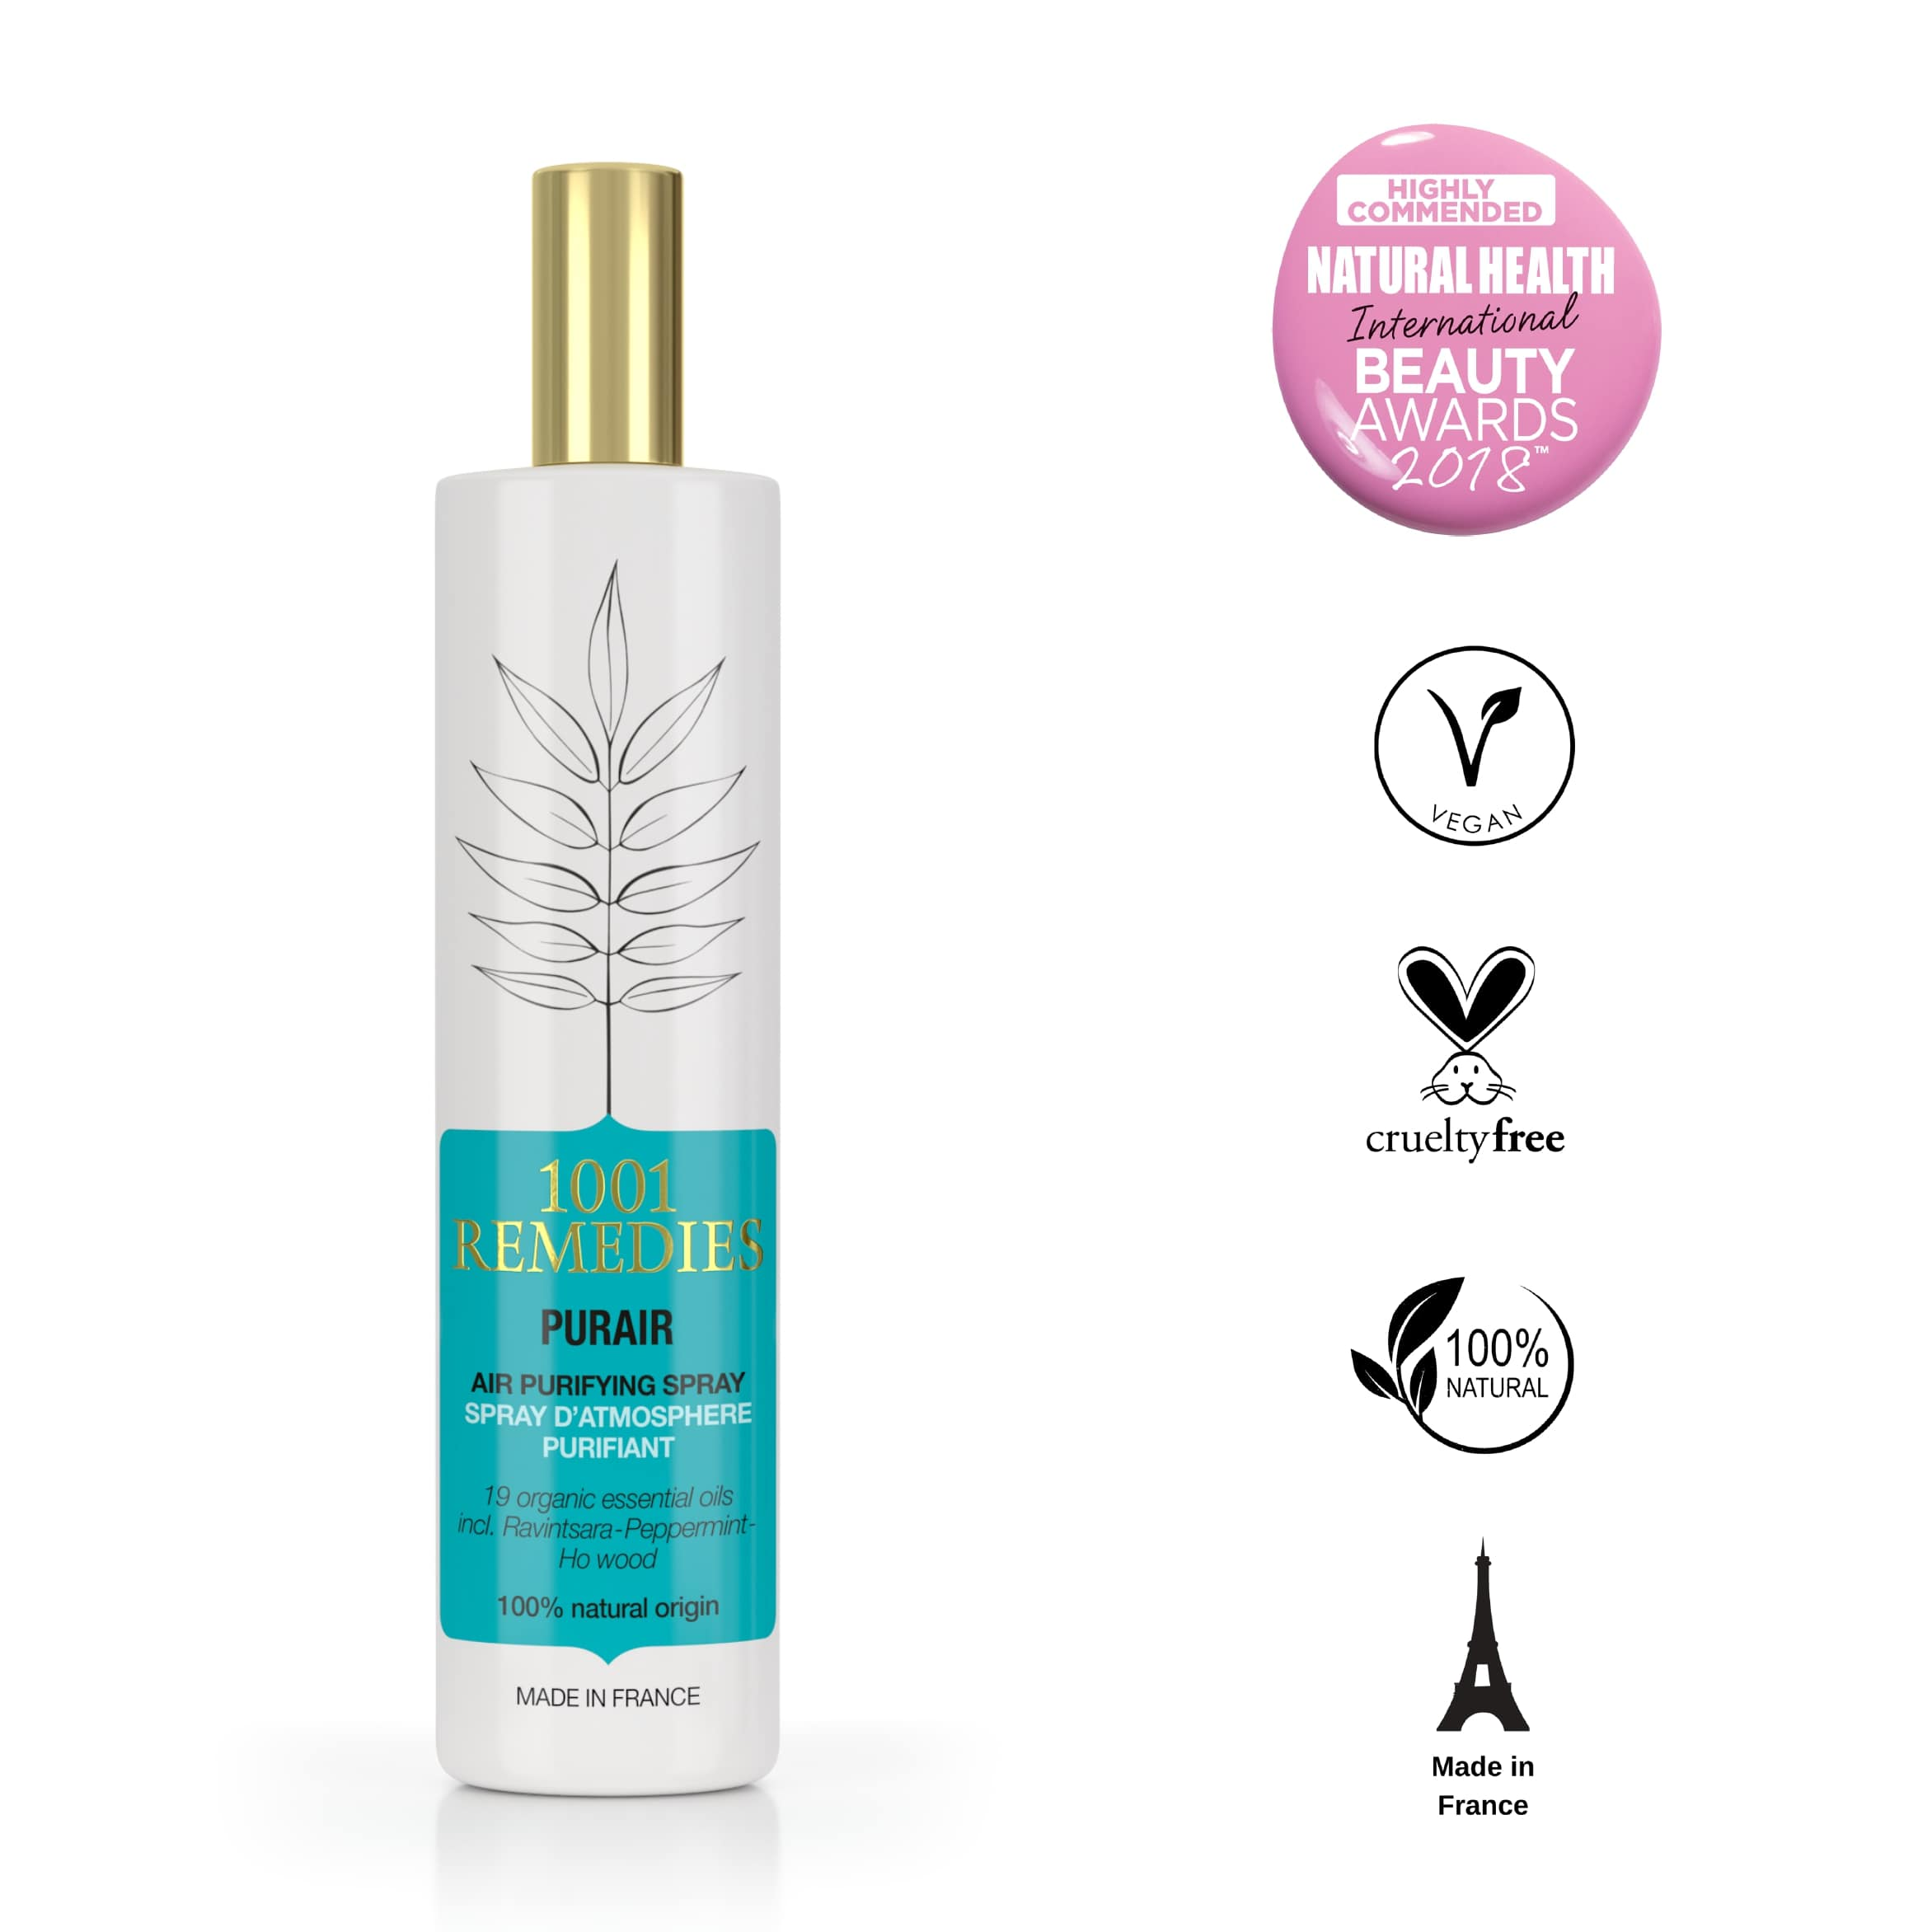 Room Spray 100ml | Organic & Vegan - 1001 Remedies